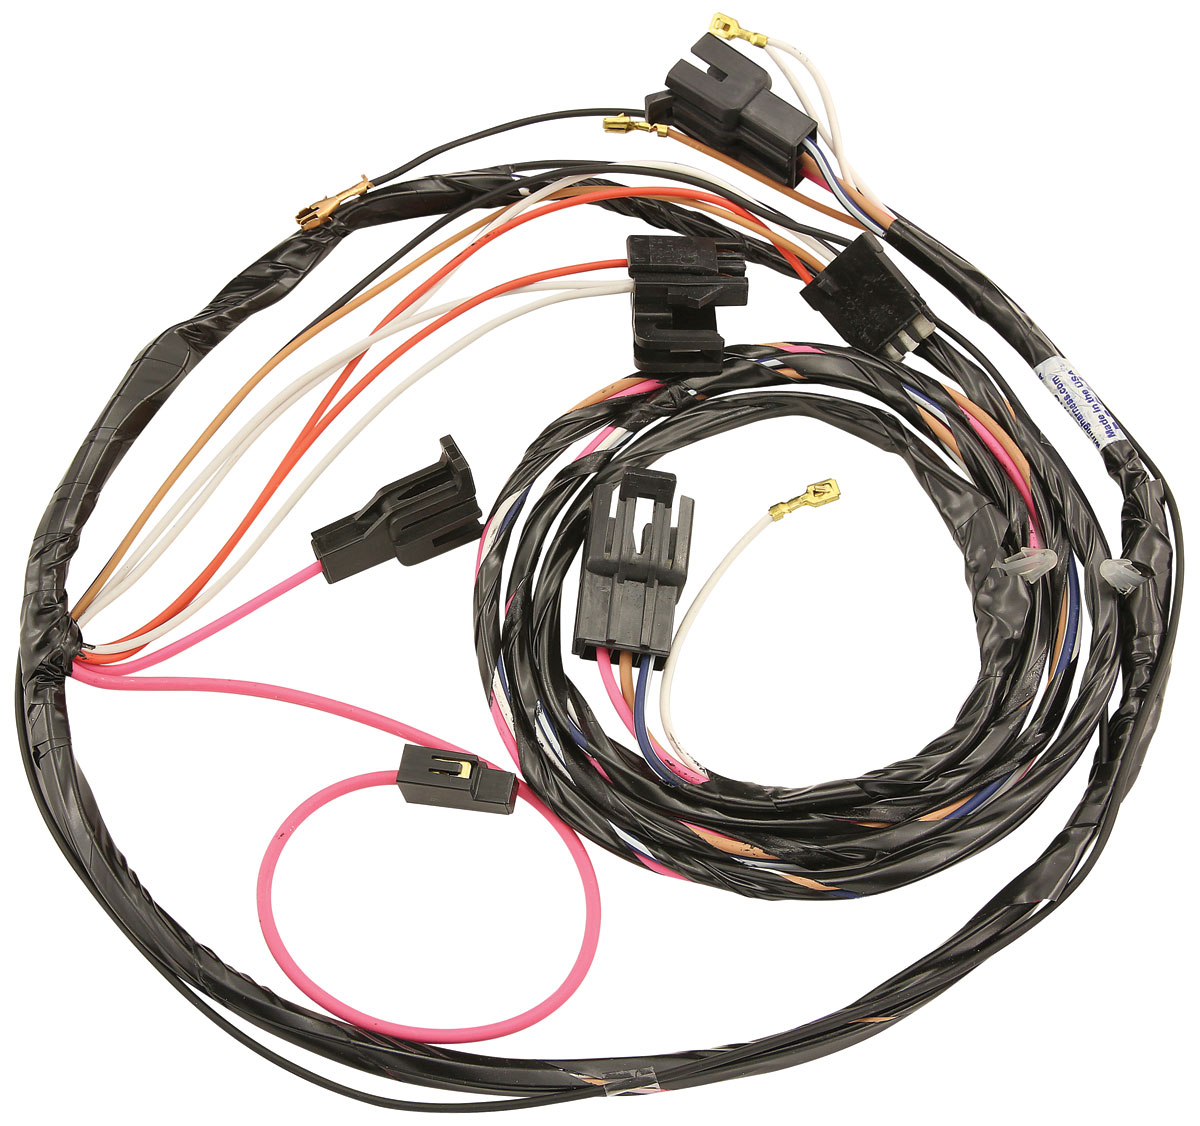 m&h 1978-1982 el camino power window harness underdash ... 1980 el camino wiring harness #6